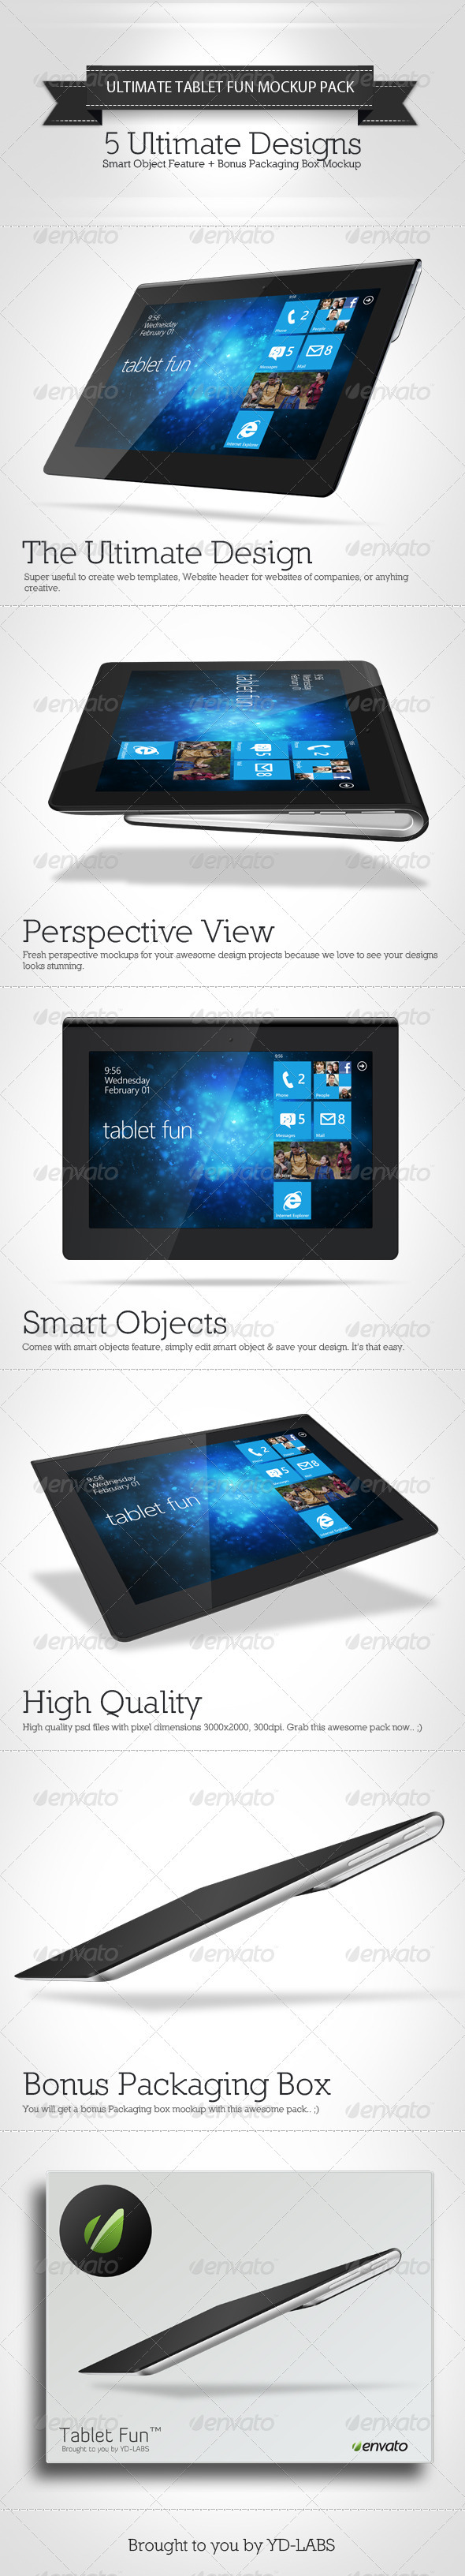 Tablet Fun Mockup Pack